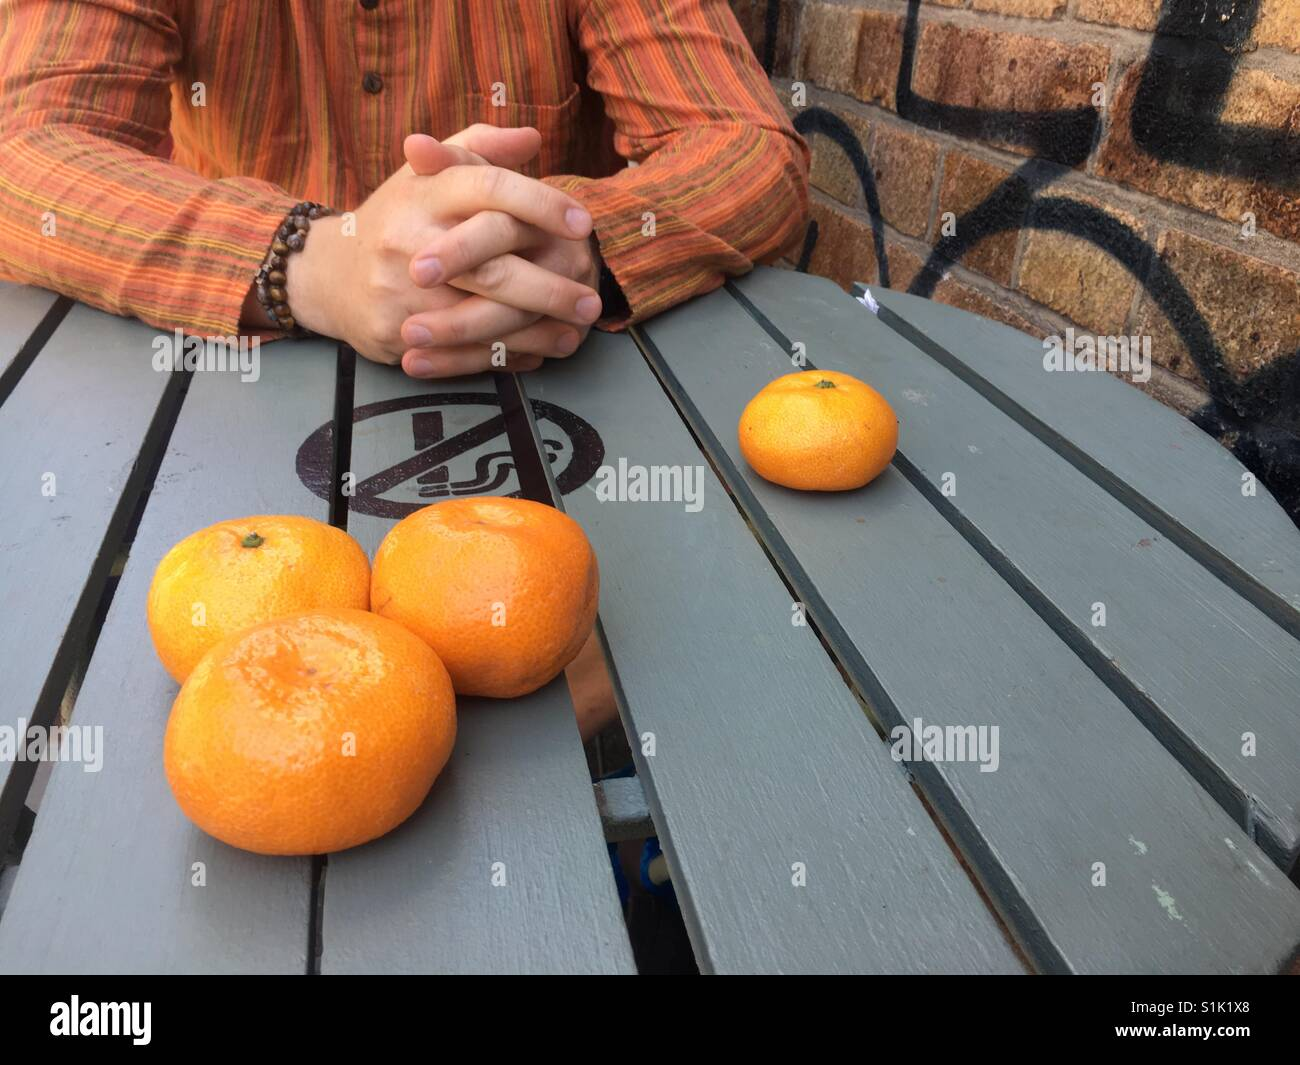 Oranges on a blue table and graffiti wall - Stock Image